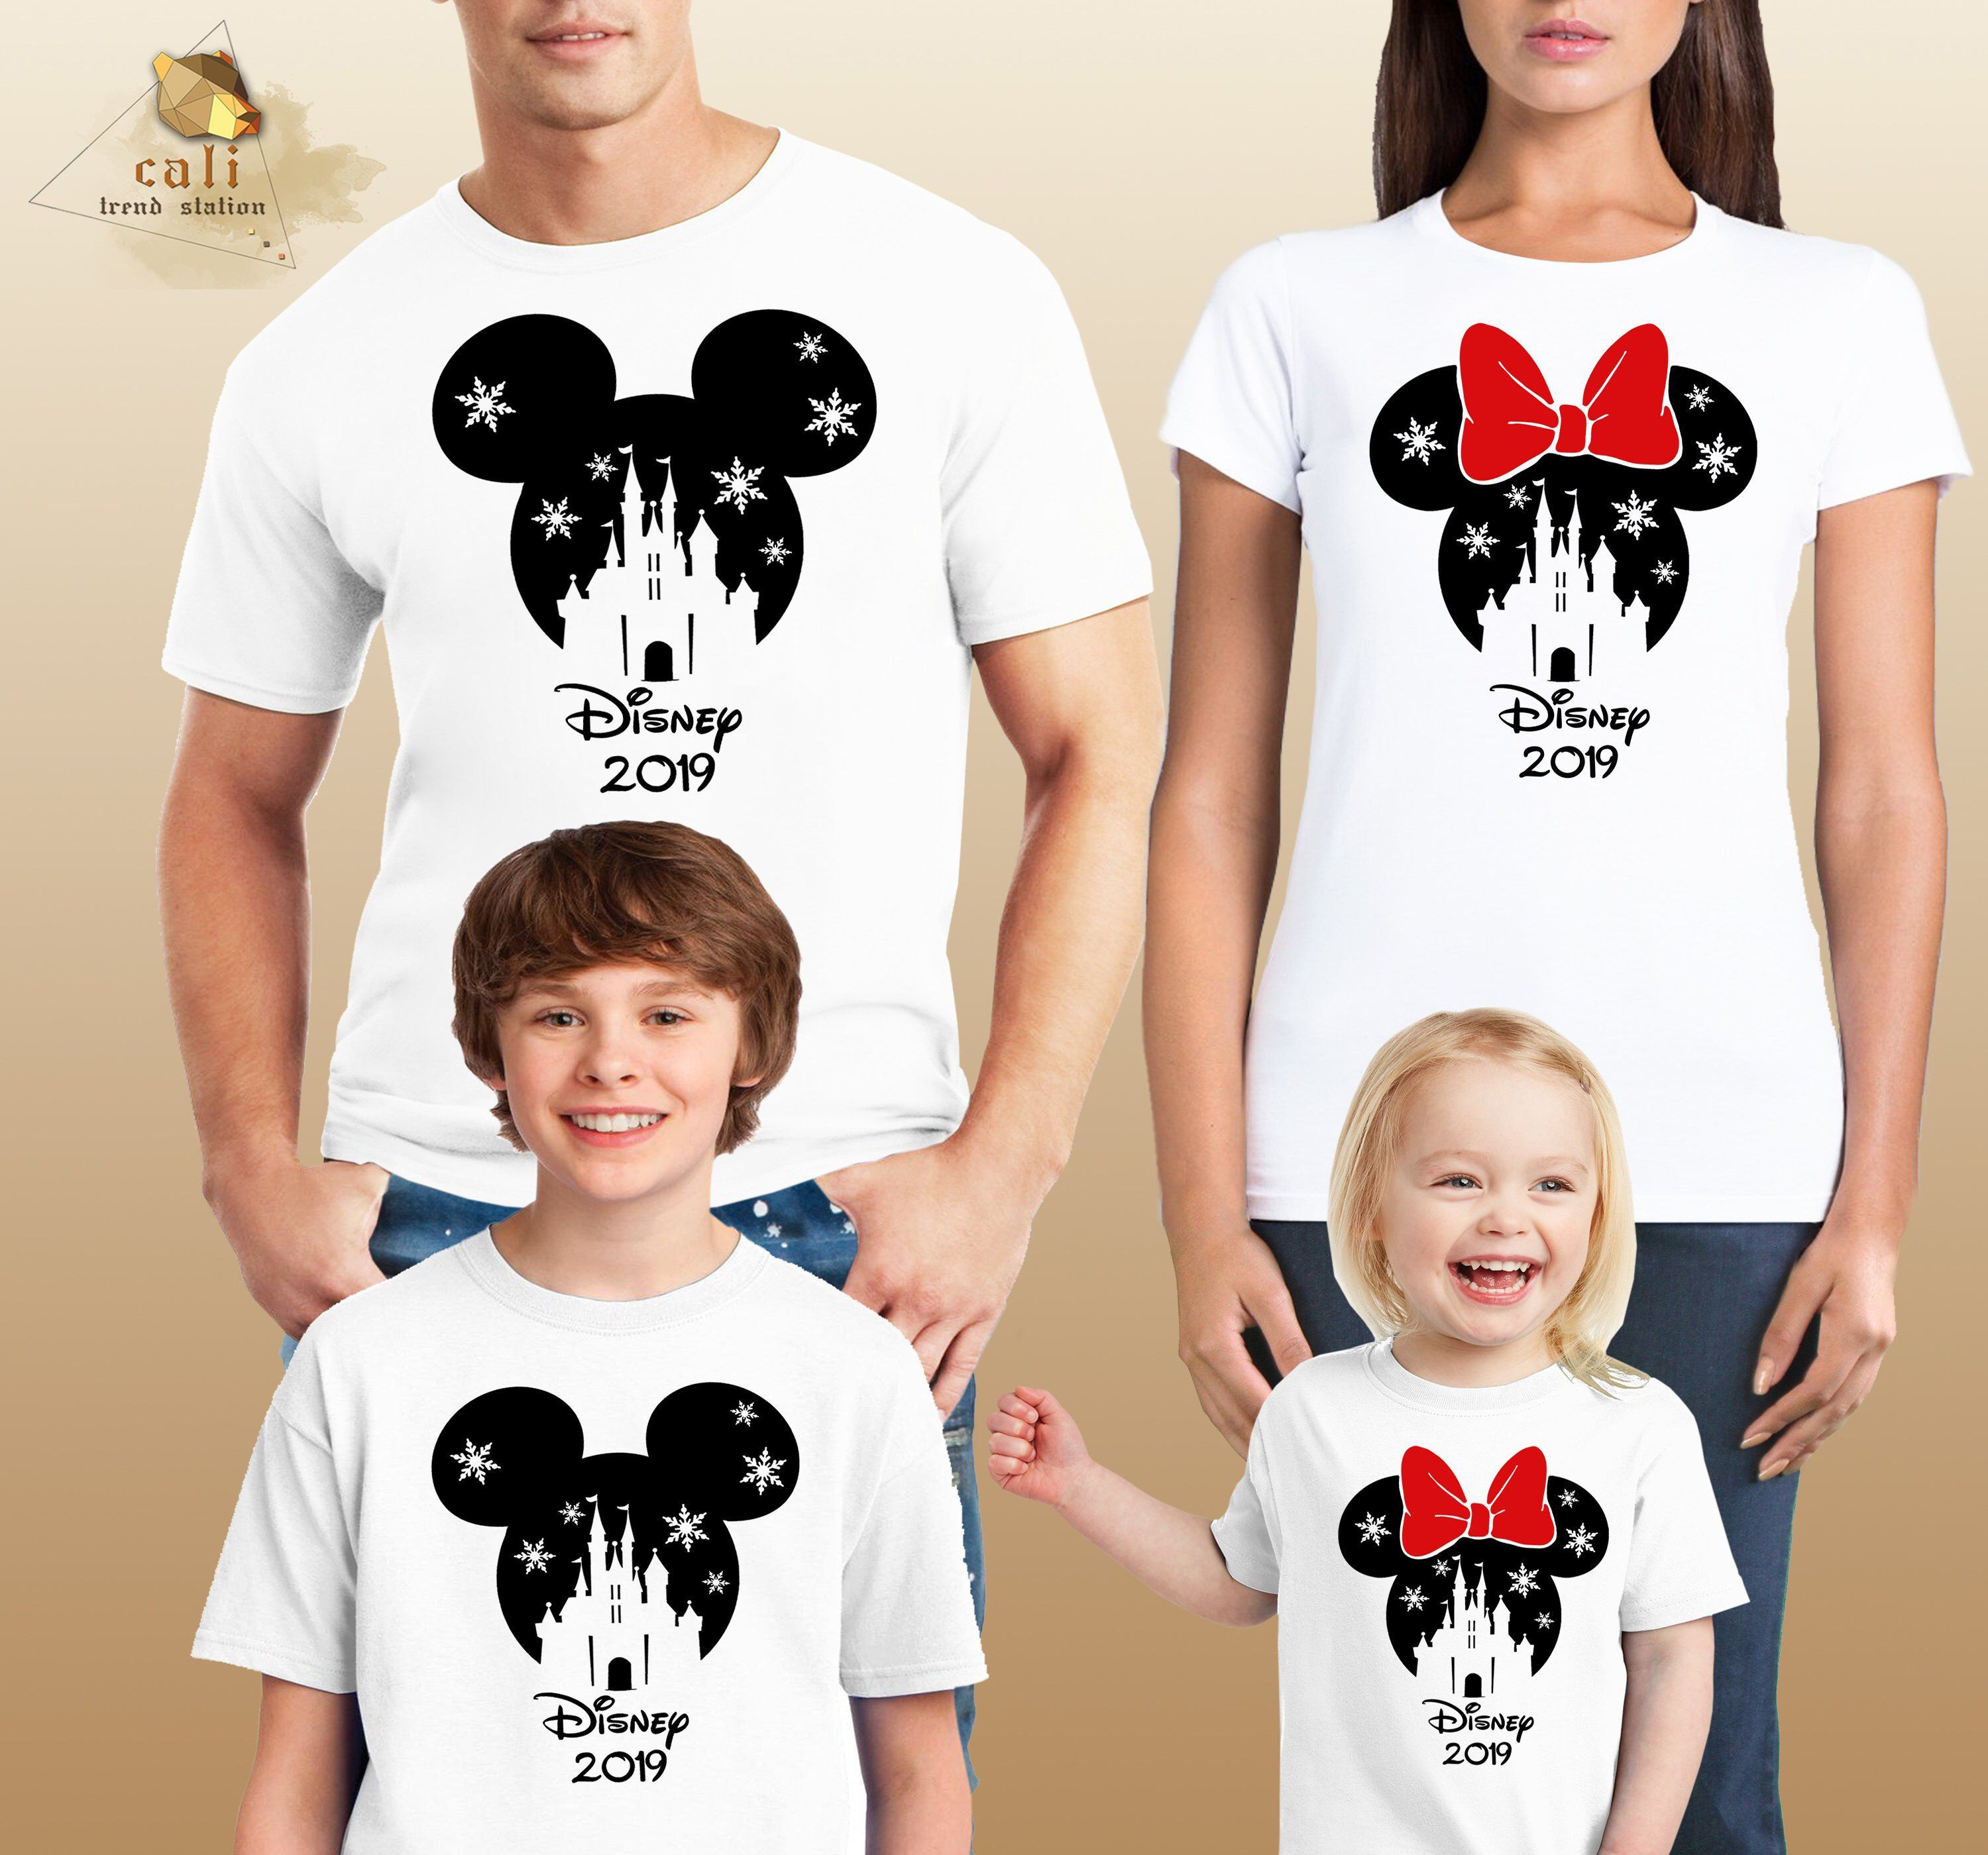 c4887dad Disney Family Shirts 2019 Cotton Mickey and Minnie Mouse Mom Dad Boys Girls  T-Shirts